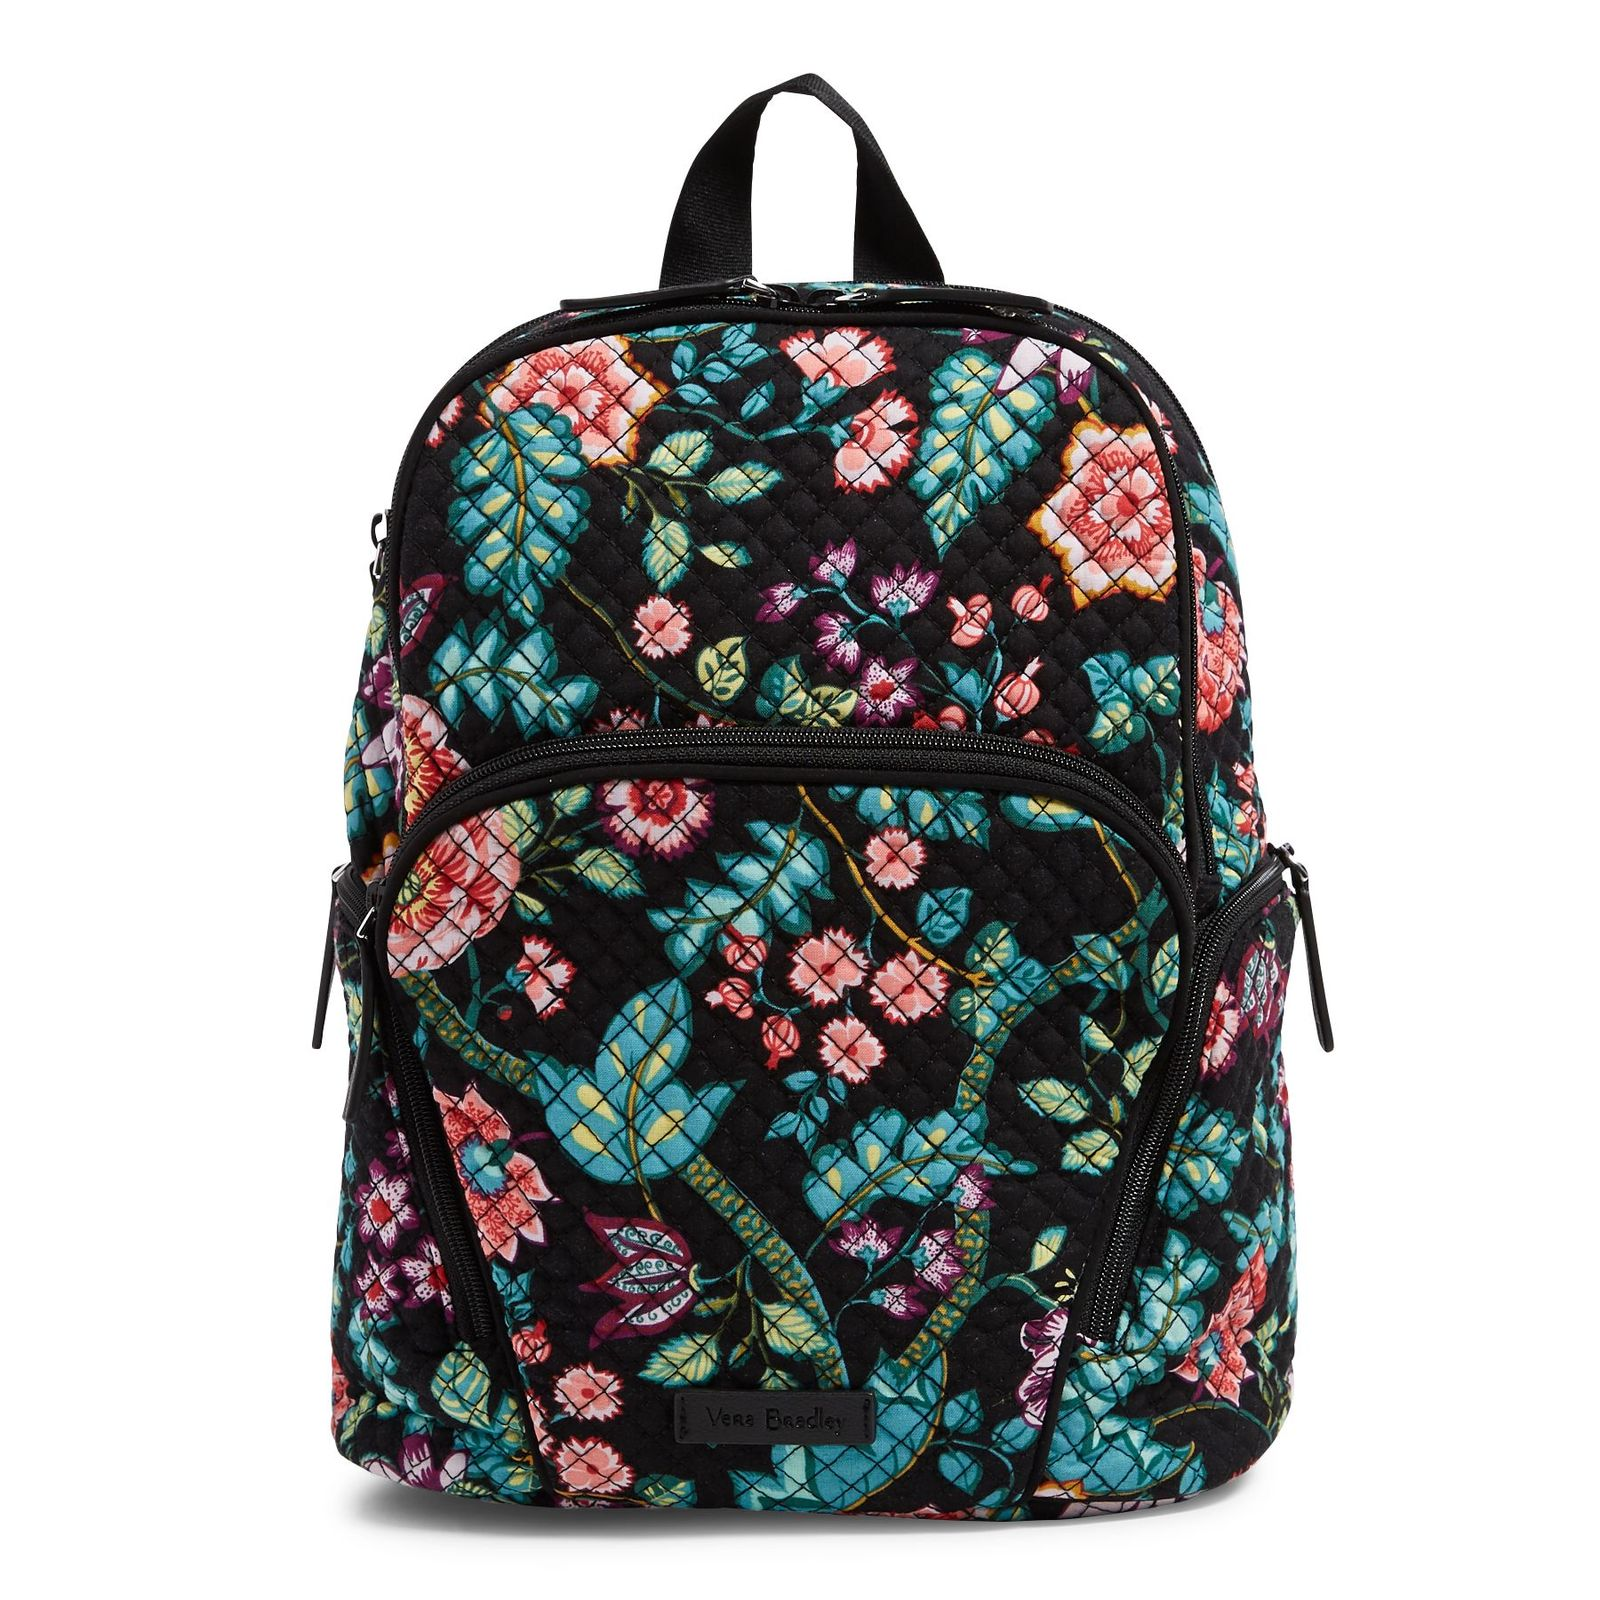 Vera Bradley Quilted Signature Cotton Hadley Backpack, Vines Floral